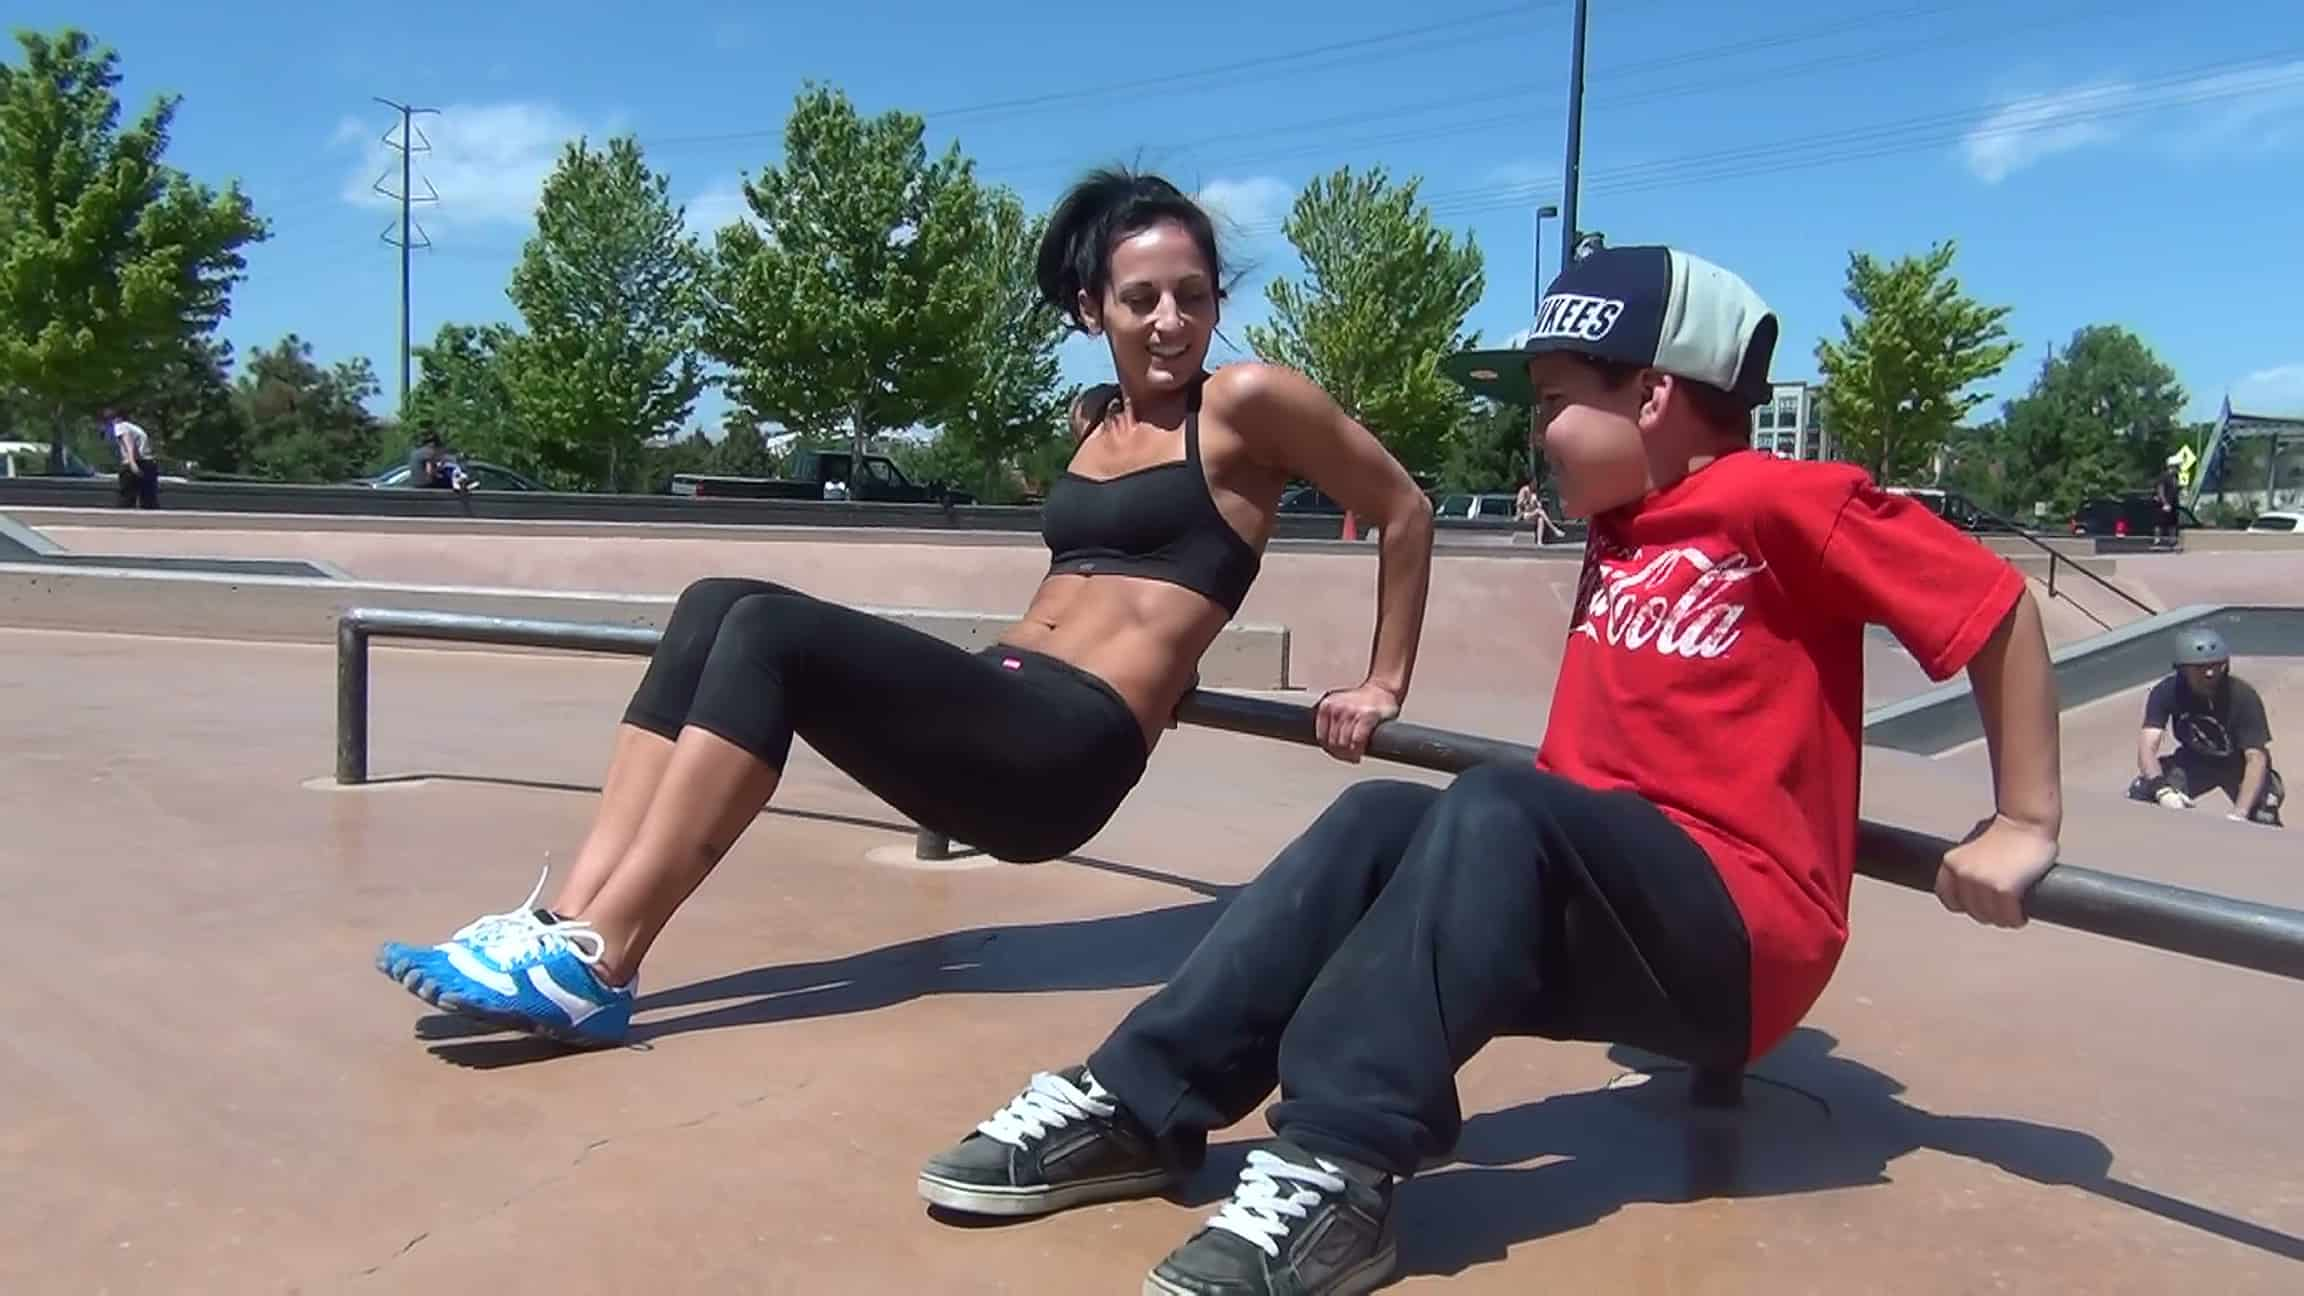 Anywhere Workout Series: Part 3 of 3